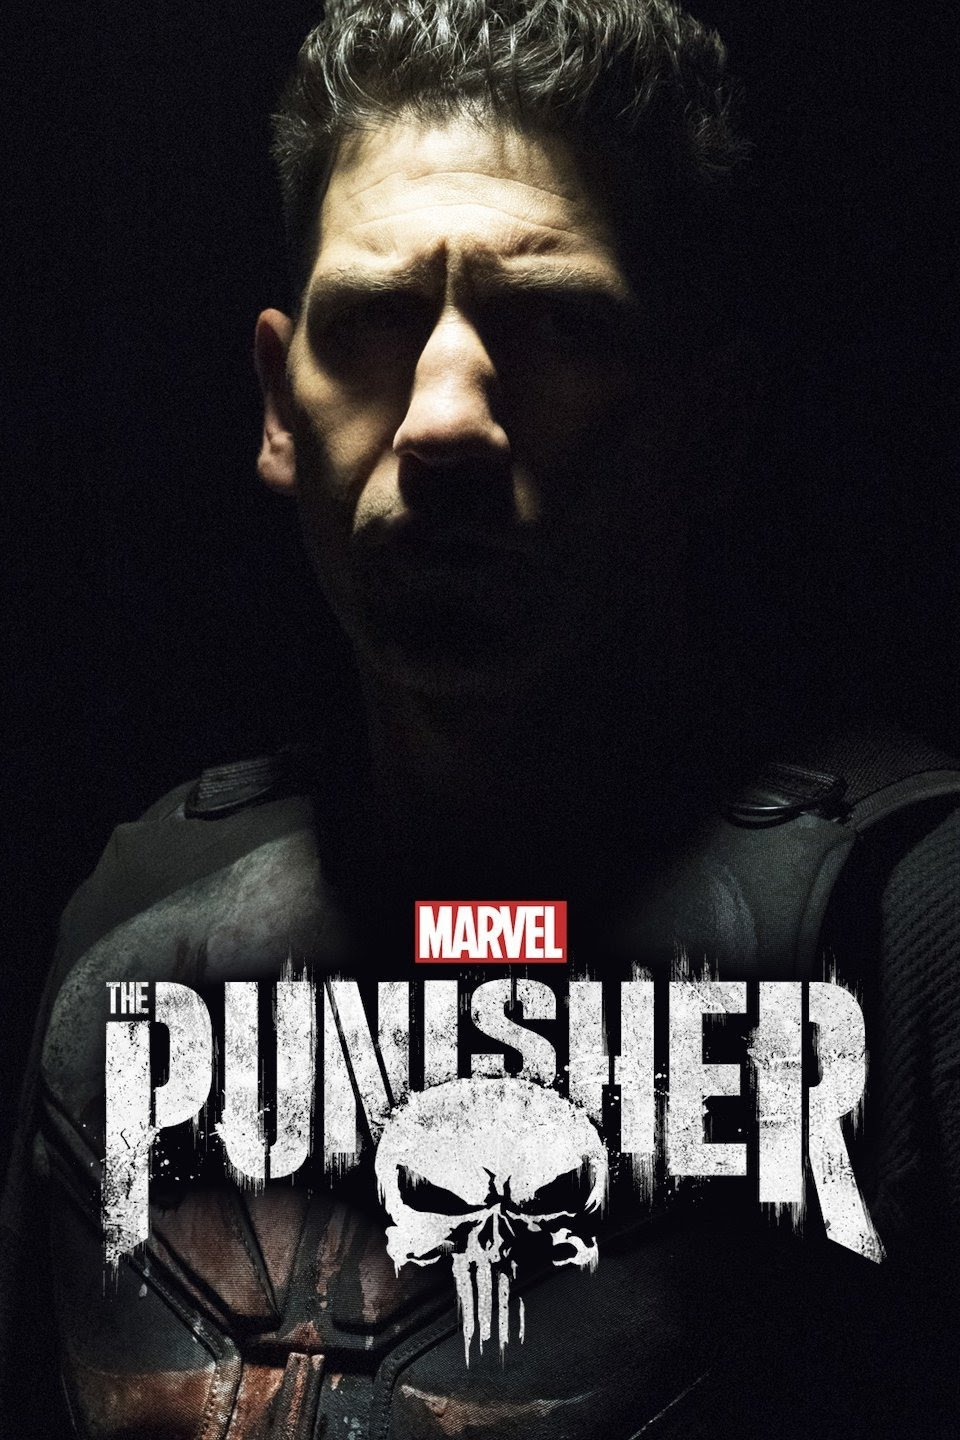 Marvel's The Punisher S01 E03 Cut